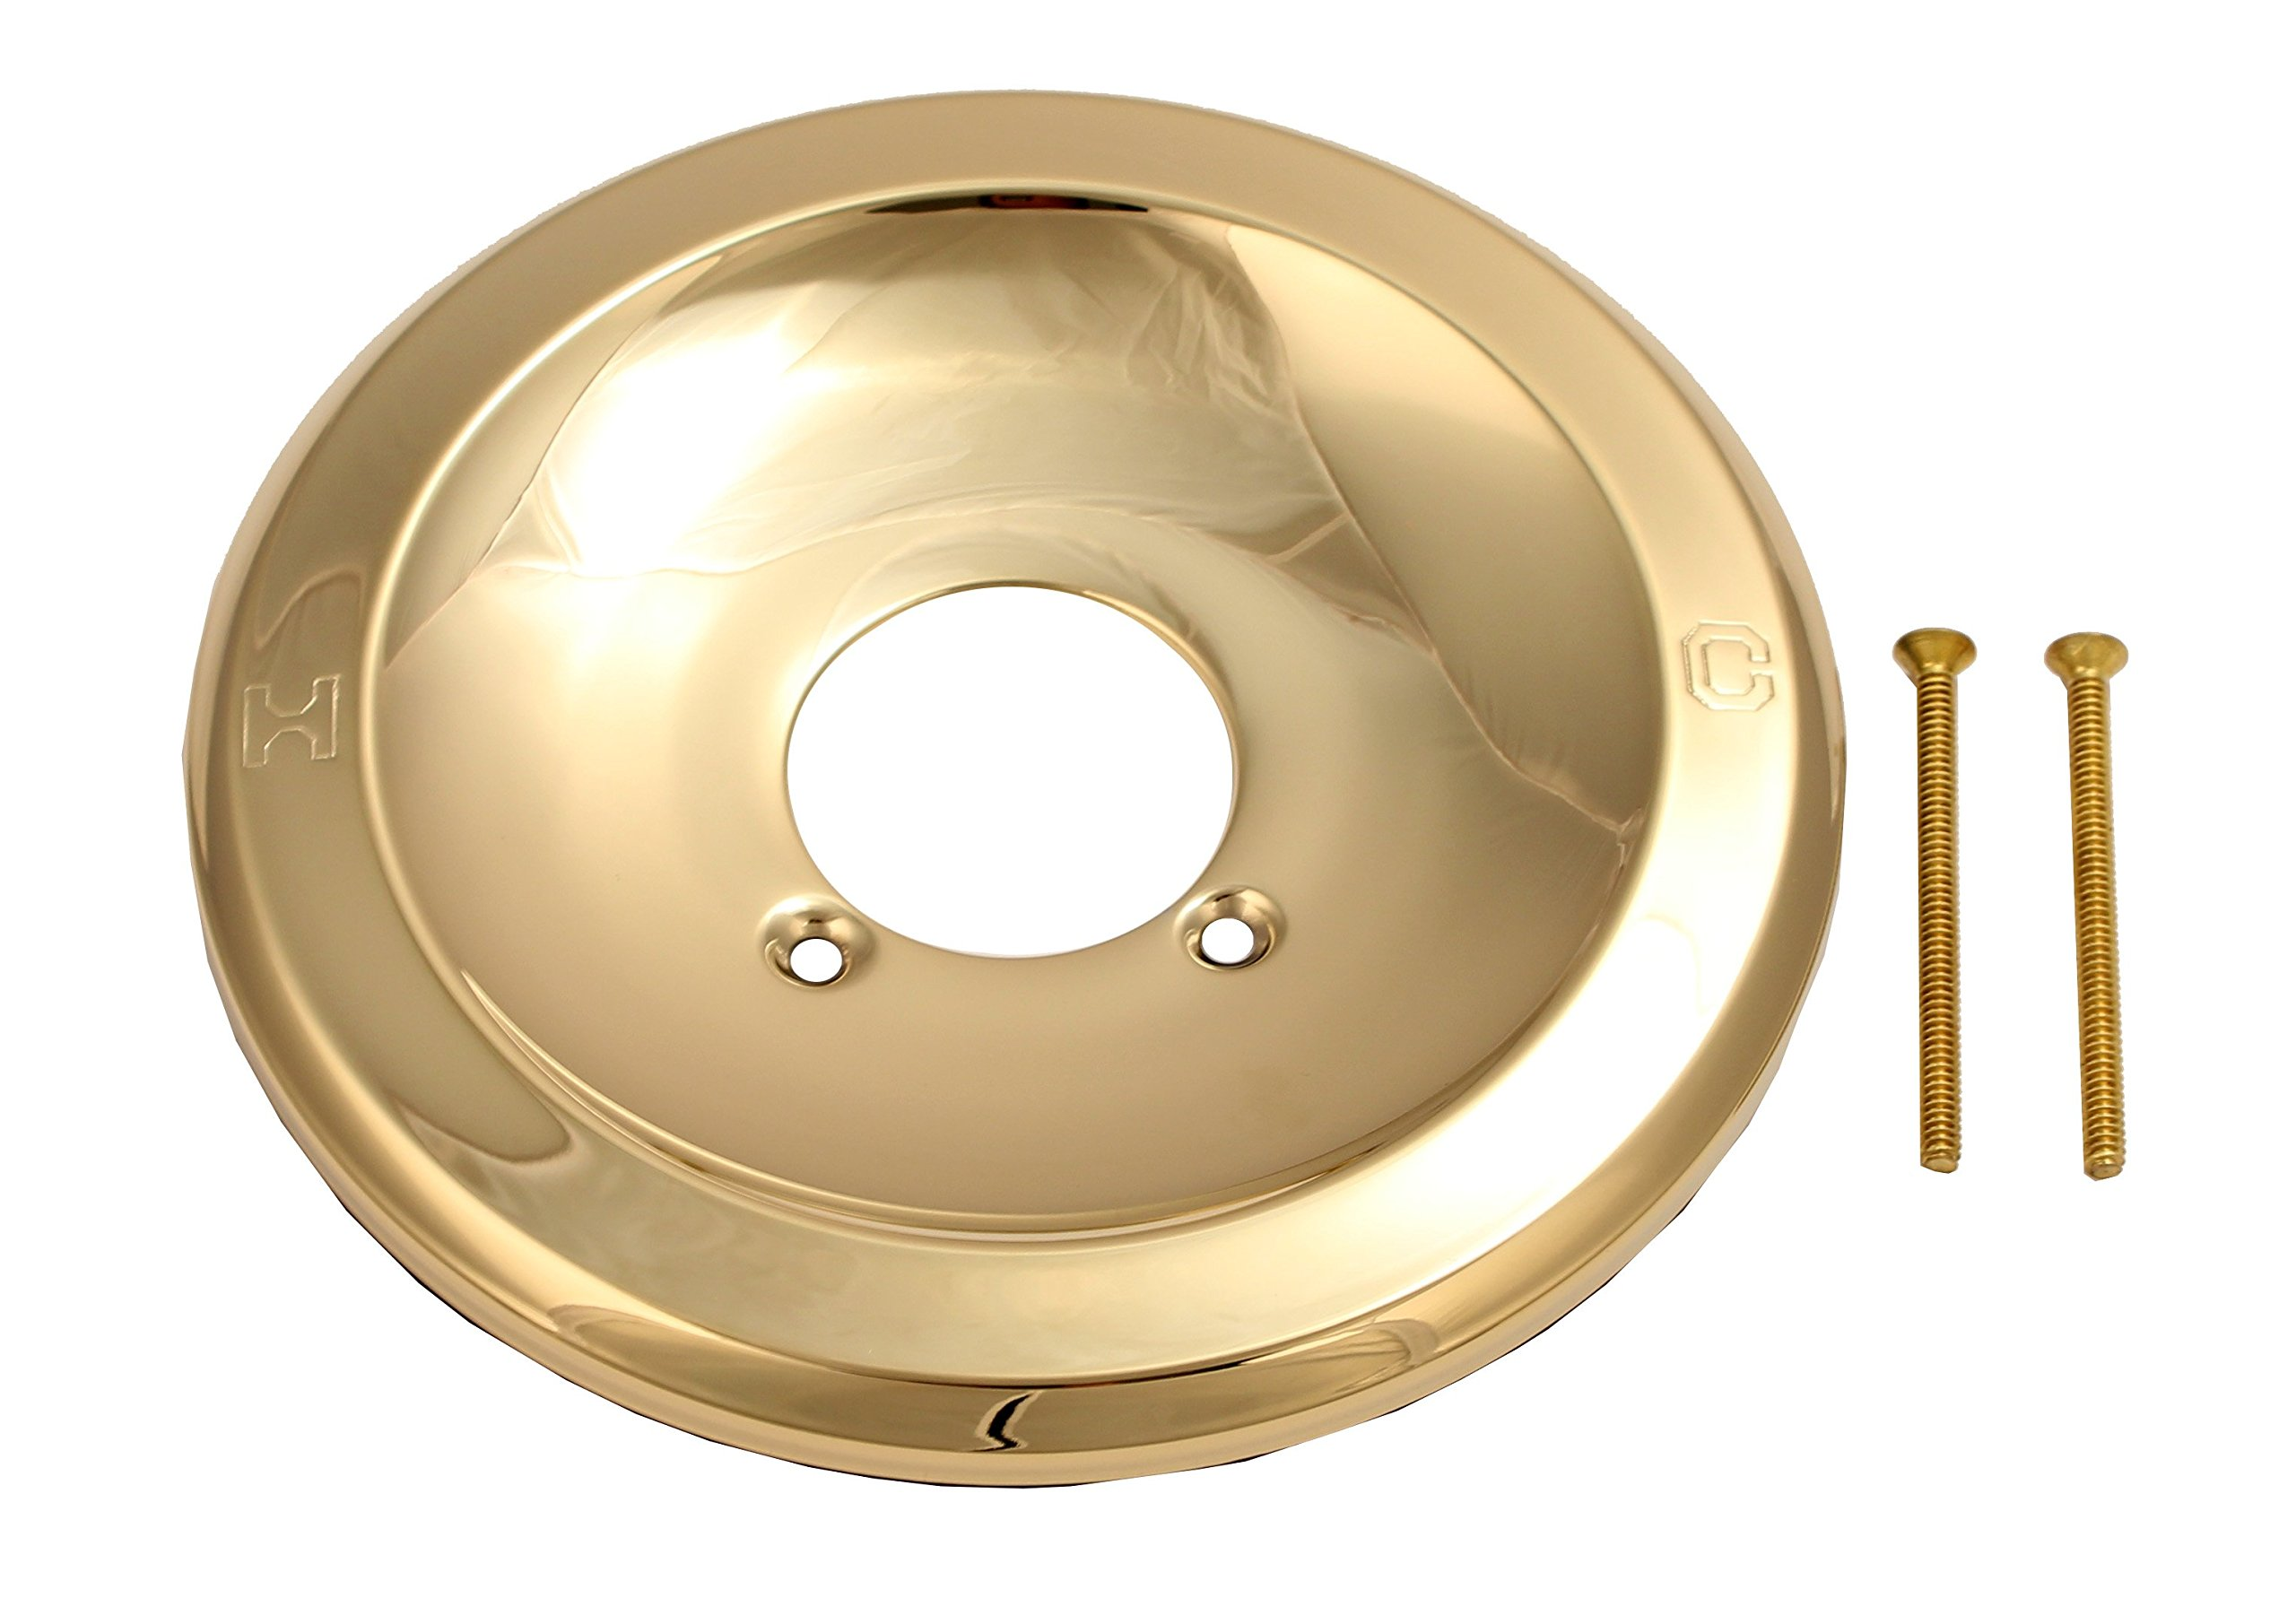 Shower Faucet Face Plate - Fit Delta, Peerless 1-handle Shower, Polish Brass Finish - By Plumb USA